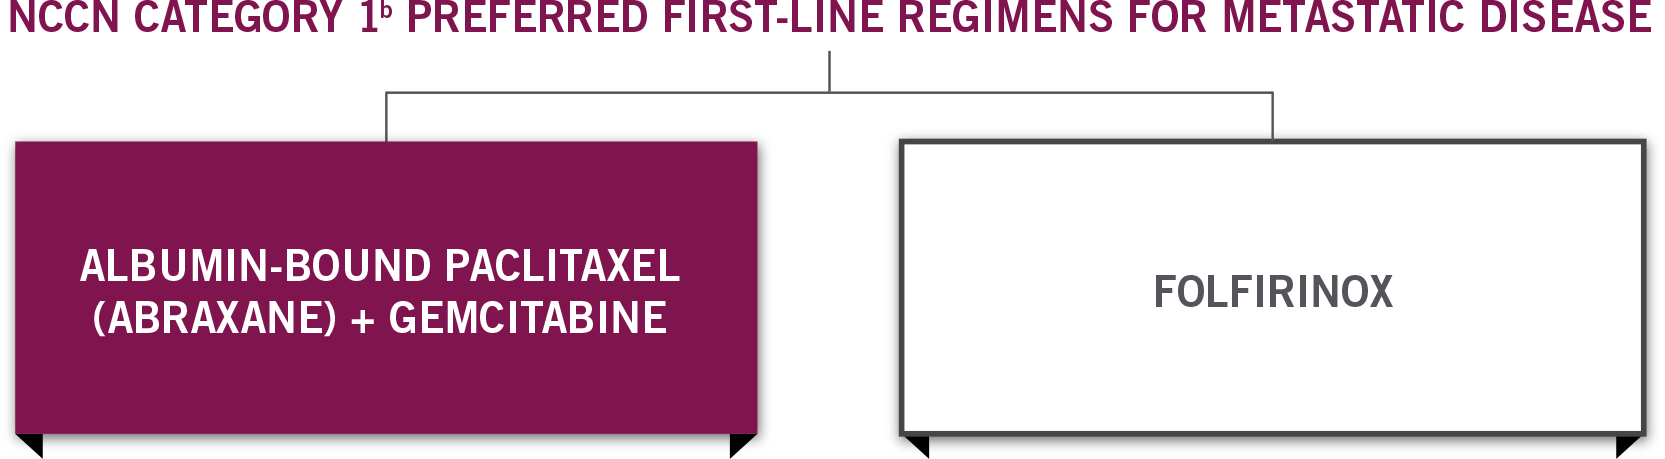 ABRAXANE + gemcitabine & FOLFIRINOX are NCCN Category 1 preferred first line regimens for patients with metastatic pancreatic cancer and good PS